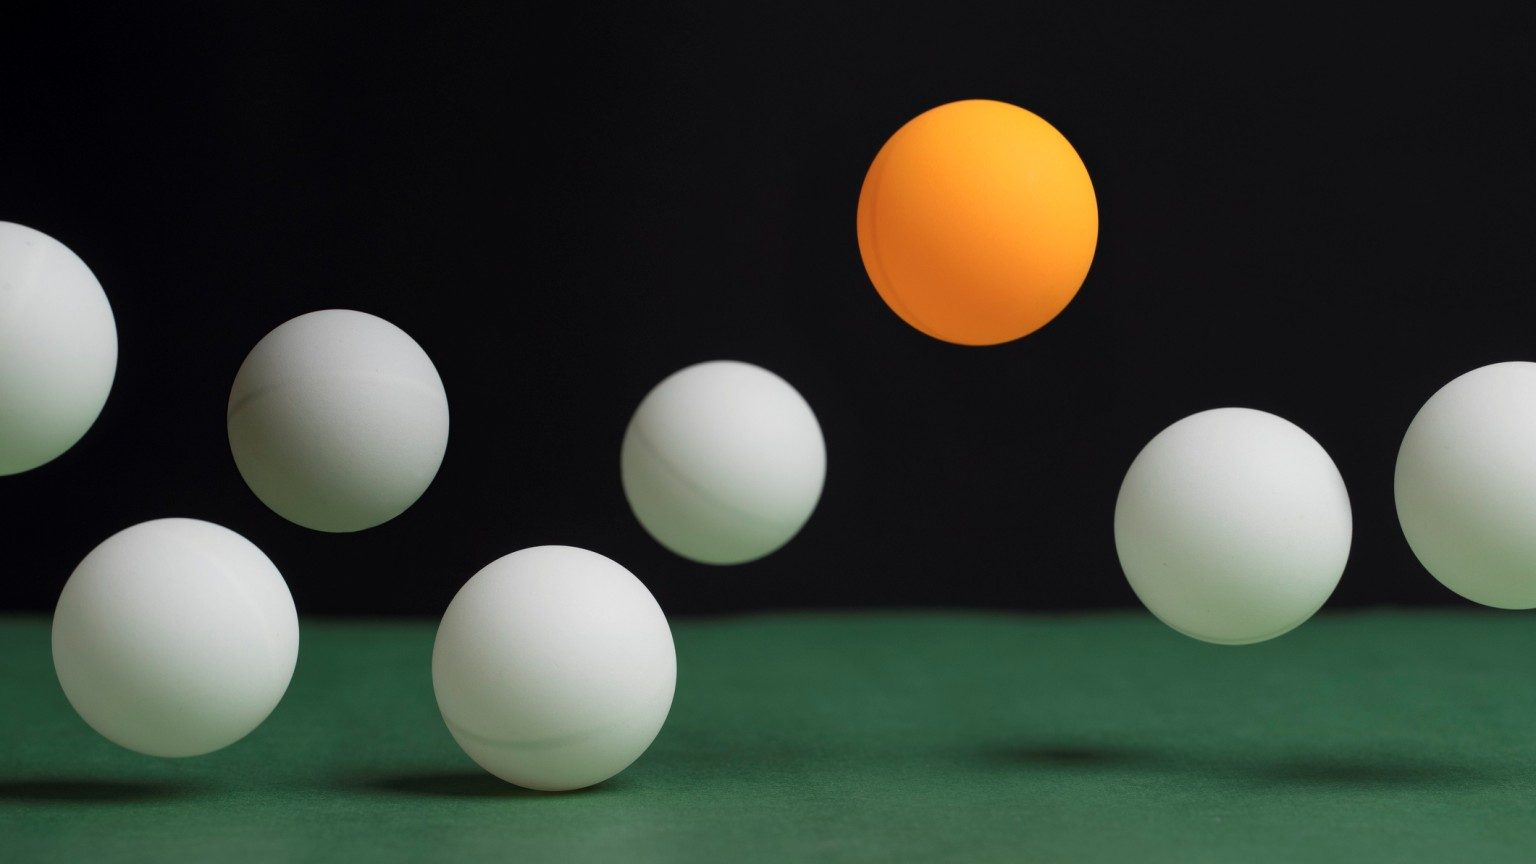 Group of Table Tennis Balls bouncing. The One orange ball is higher than the white balls.